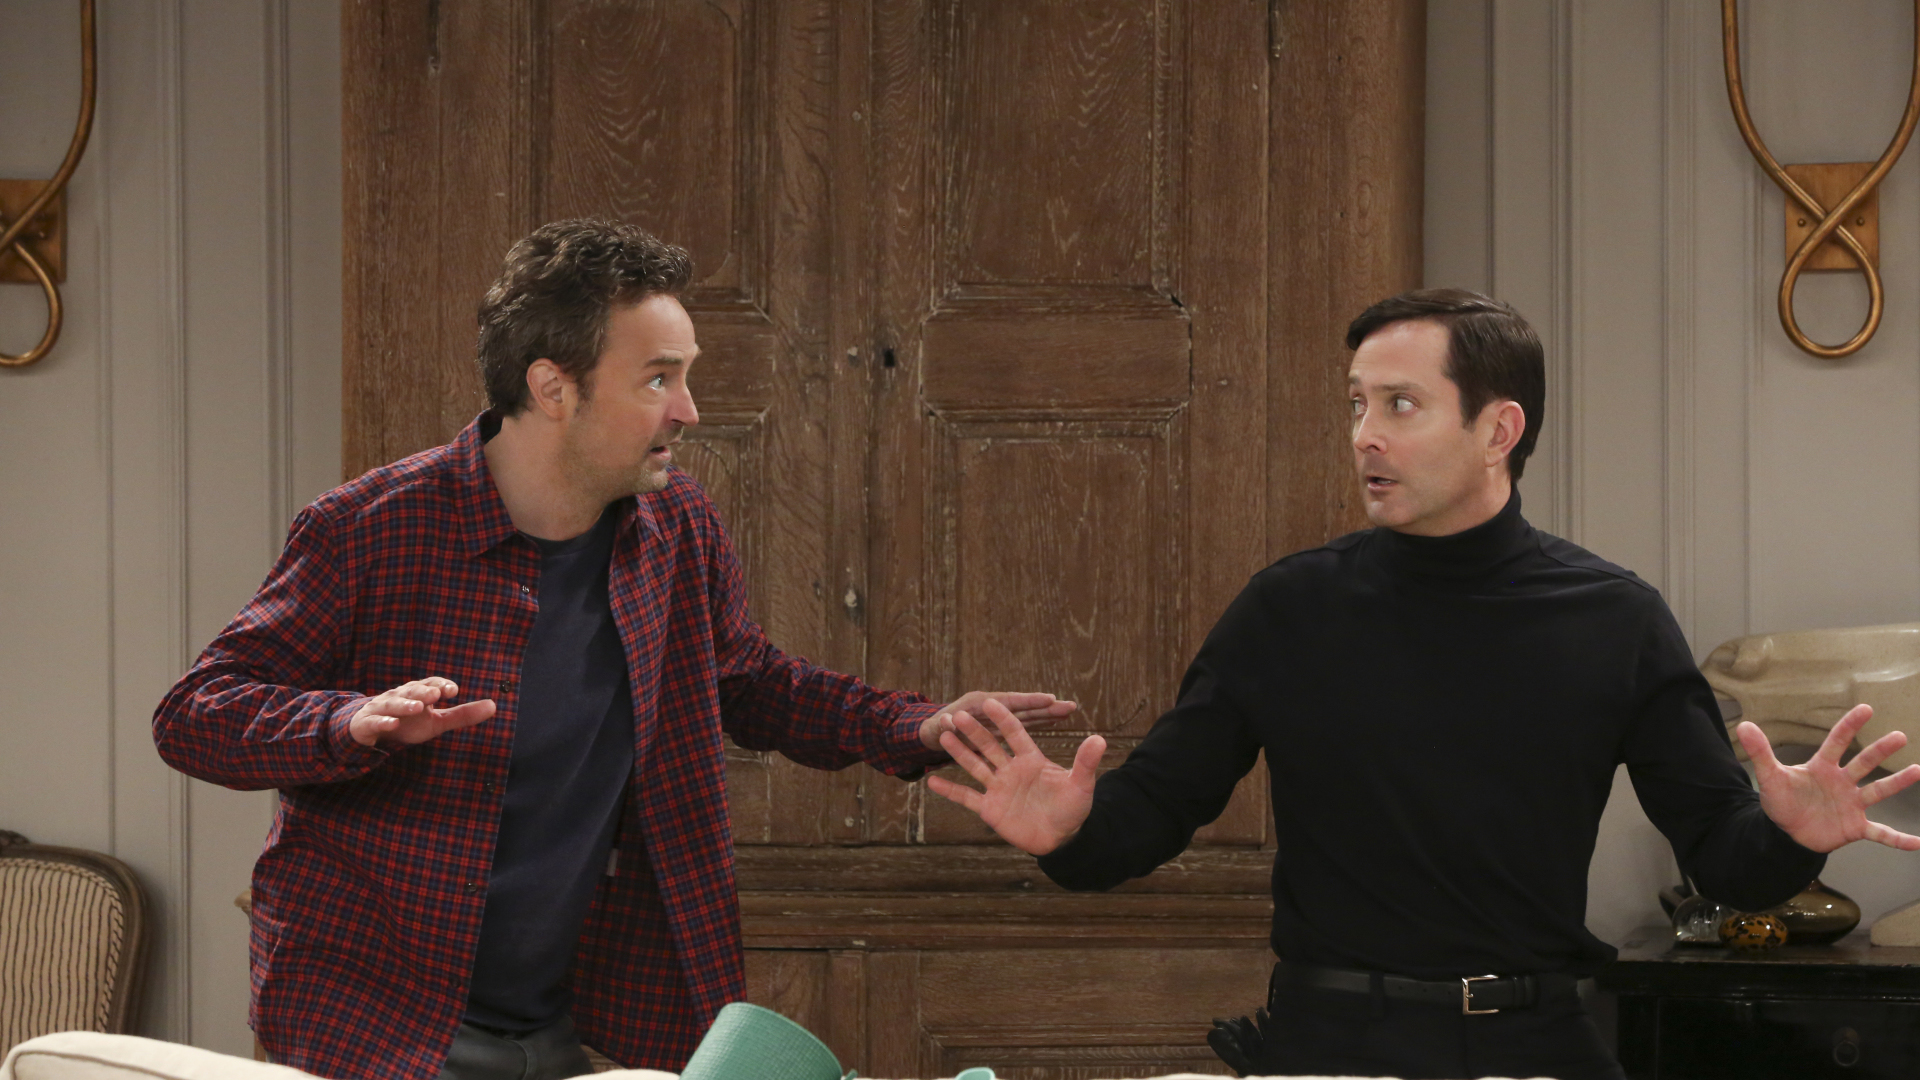 Watch The Odd Couple Season 1 Episode 9: Sleeping Dogs Lie - Full show on  CBS All Access